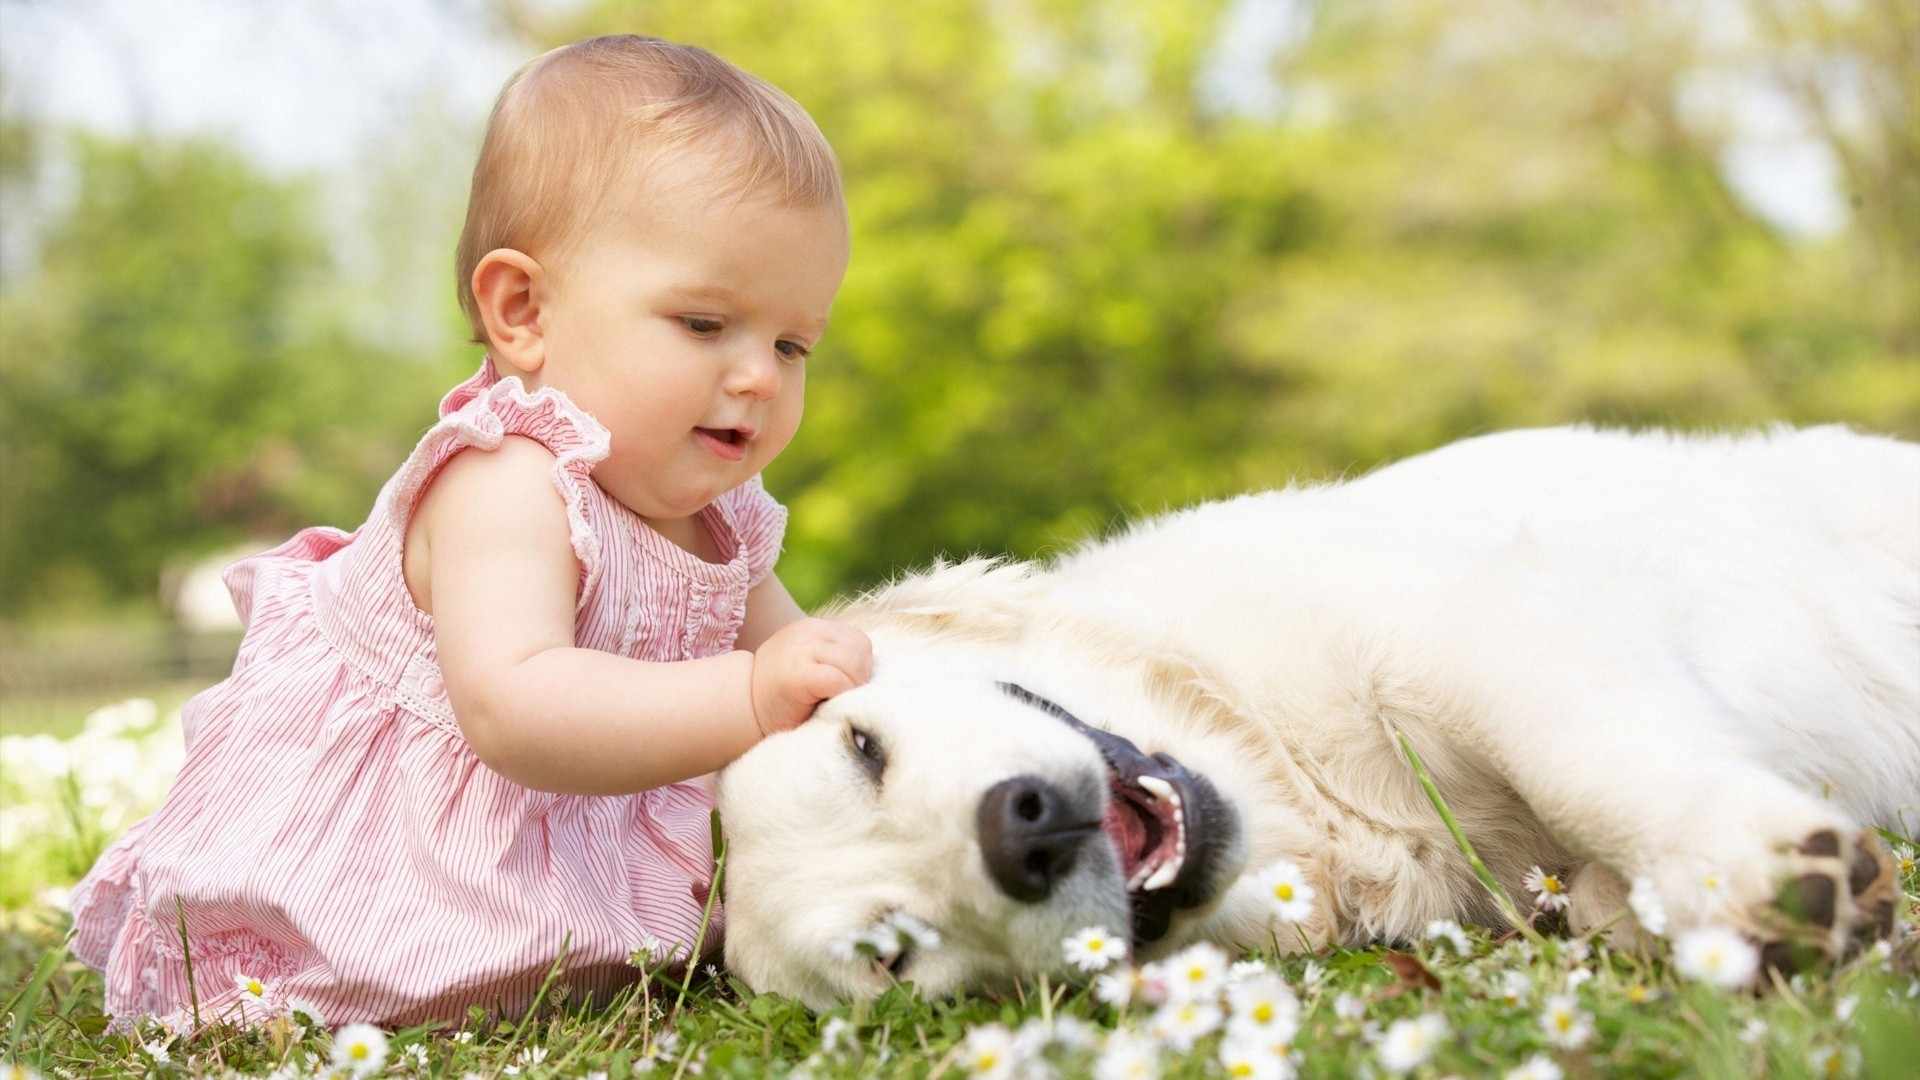 Cute baby girl pictures wallpapers 67 images 1920x1141 cute baby girls p o 1080 p wallpaper voltagebd Image collections